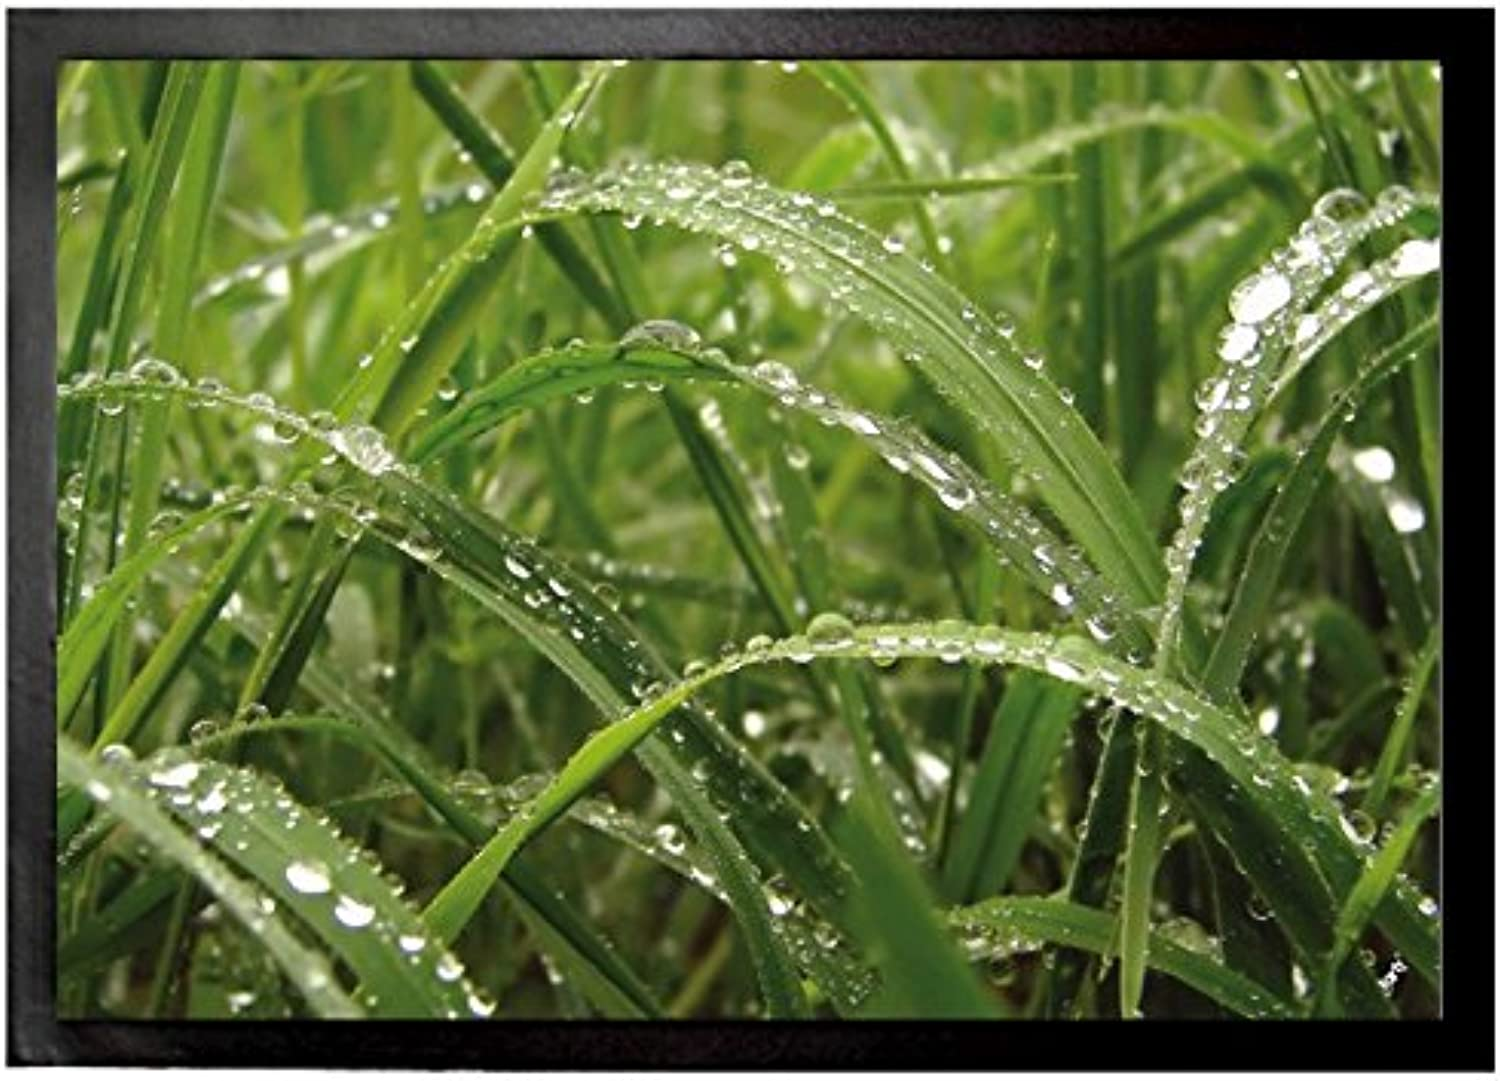 Plants Door Mat Floor Mat - Dew Drops in Green Grass (28 x 20 inches)